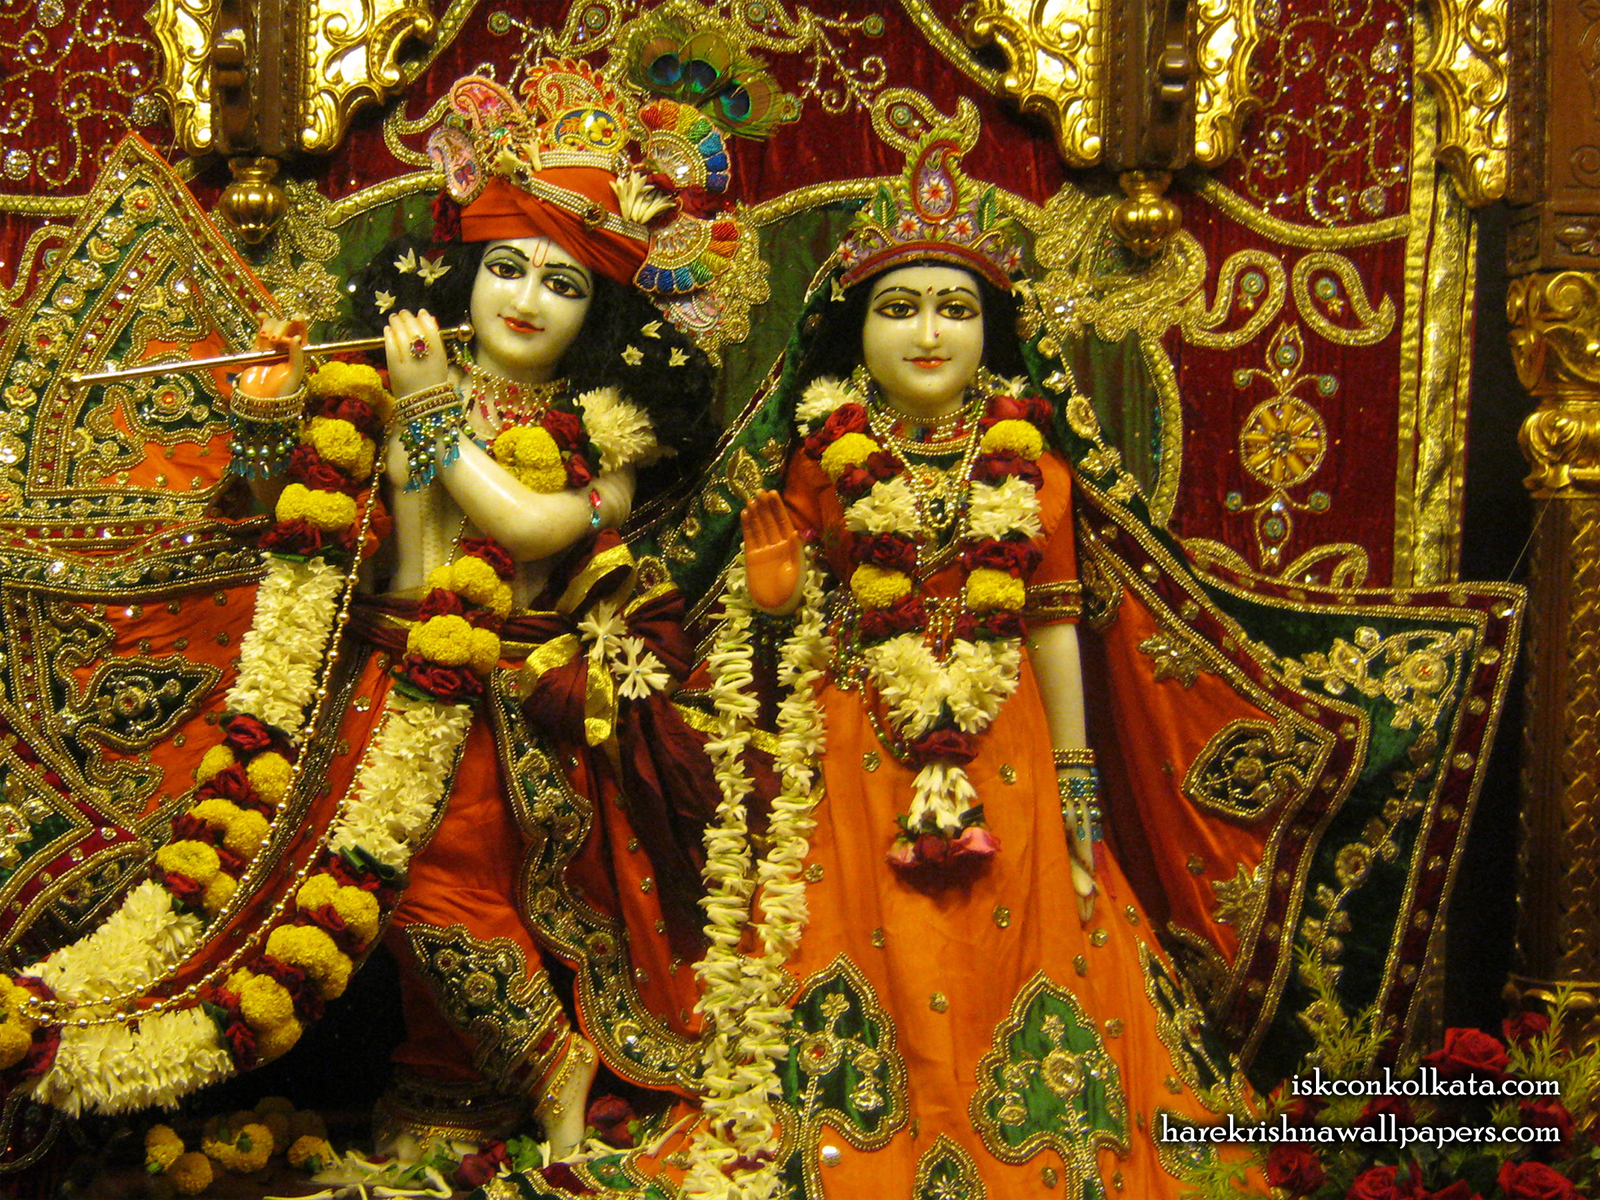 Sri Sri Radha Govinda Wallpaper (002) Size1600x1200 Download